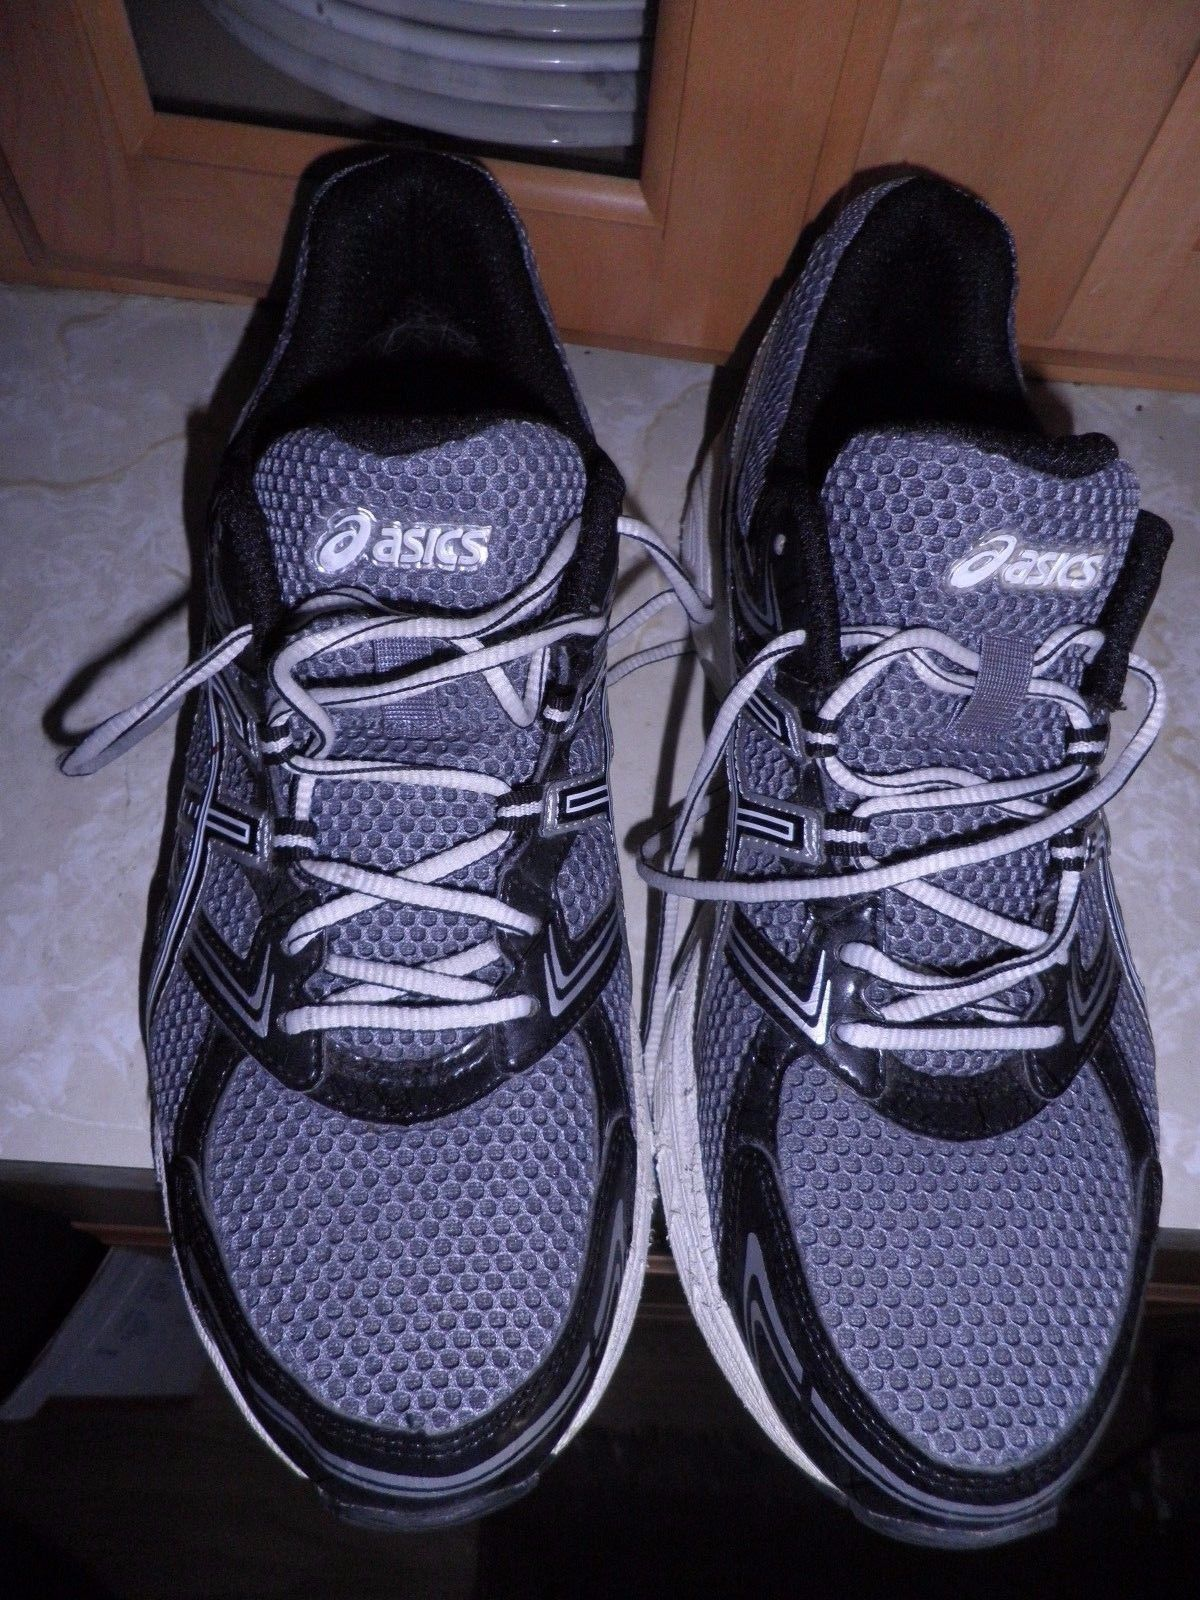 sports shoes a0a65 8aab4 Men s Black Asics Shoes Silver Equation Sz Gel 10 5 Running Ebay drwr8q